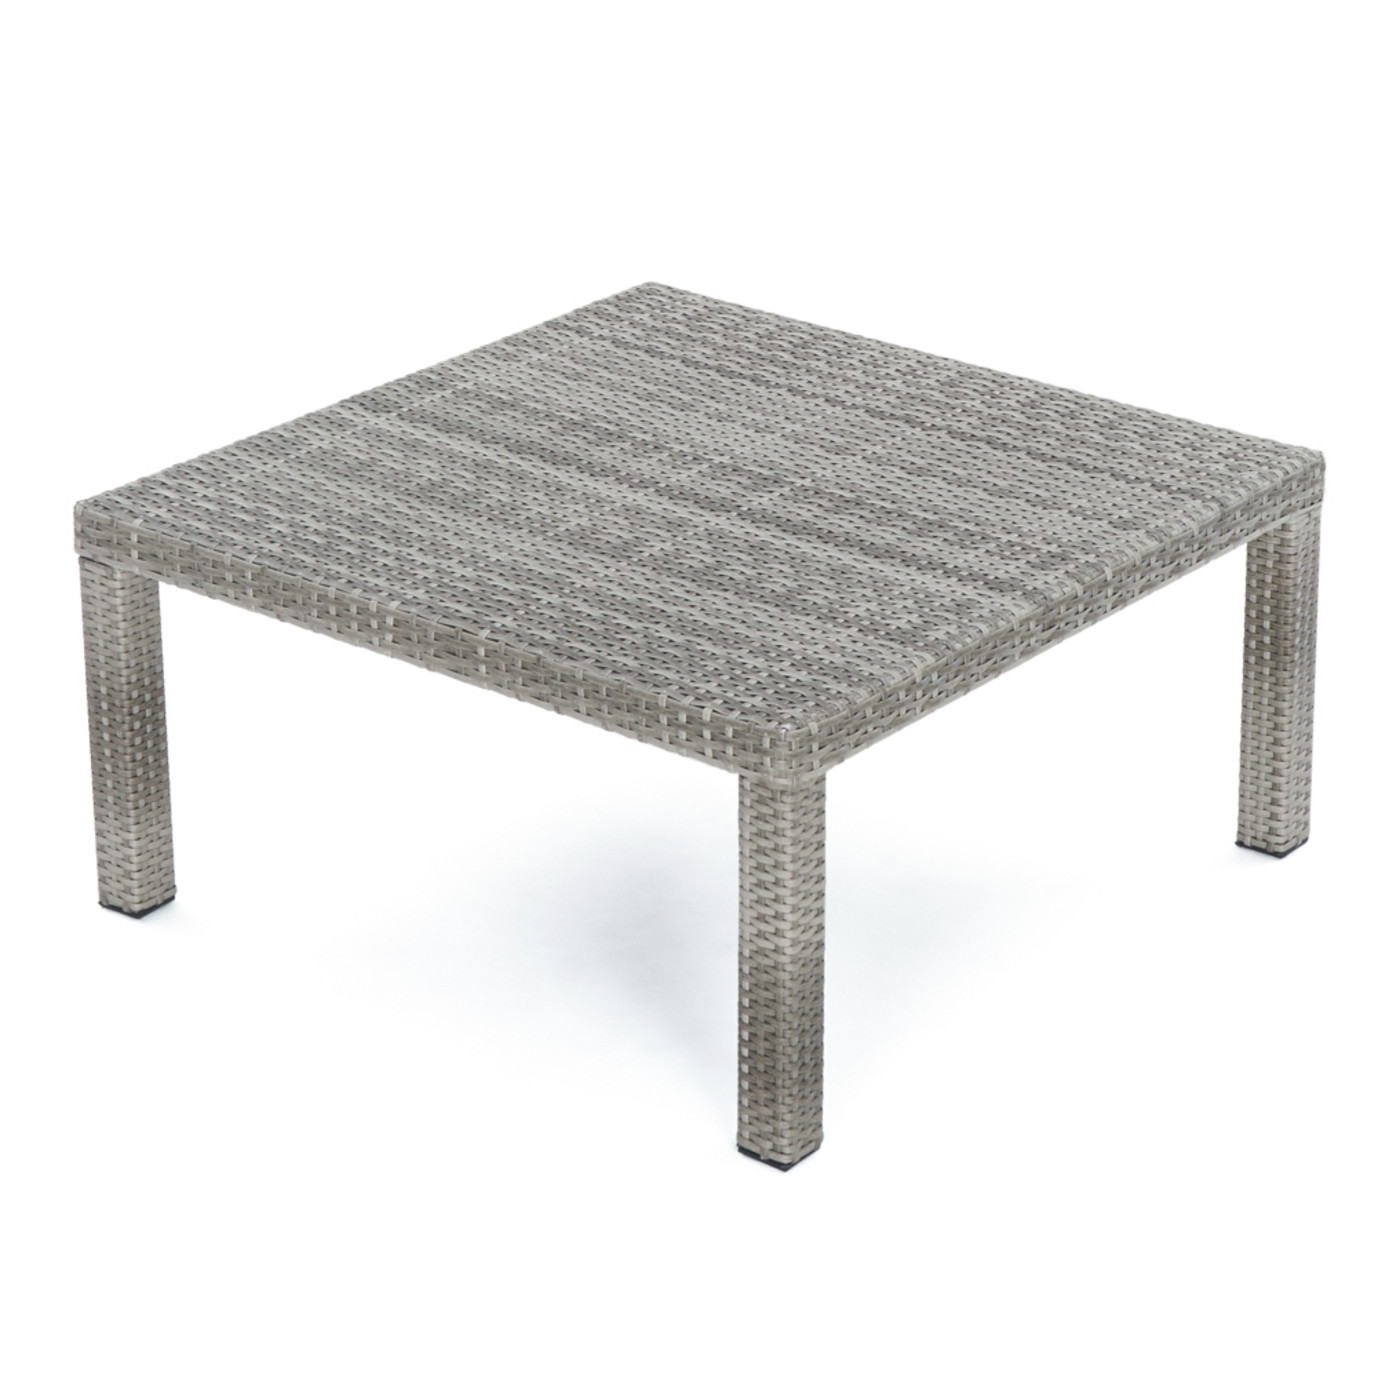 Cannes™ 4pc Sectional & Table - Charcoal Gray